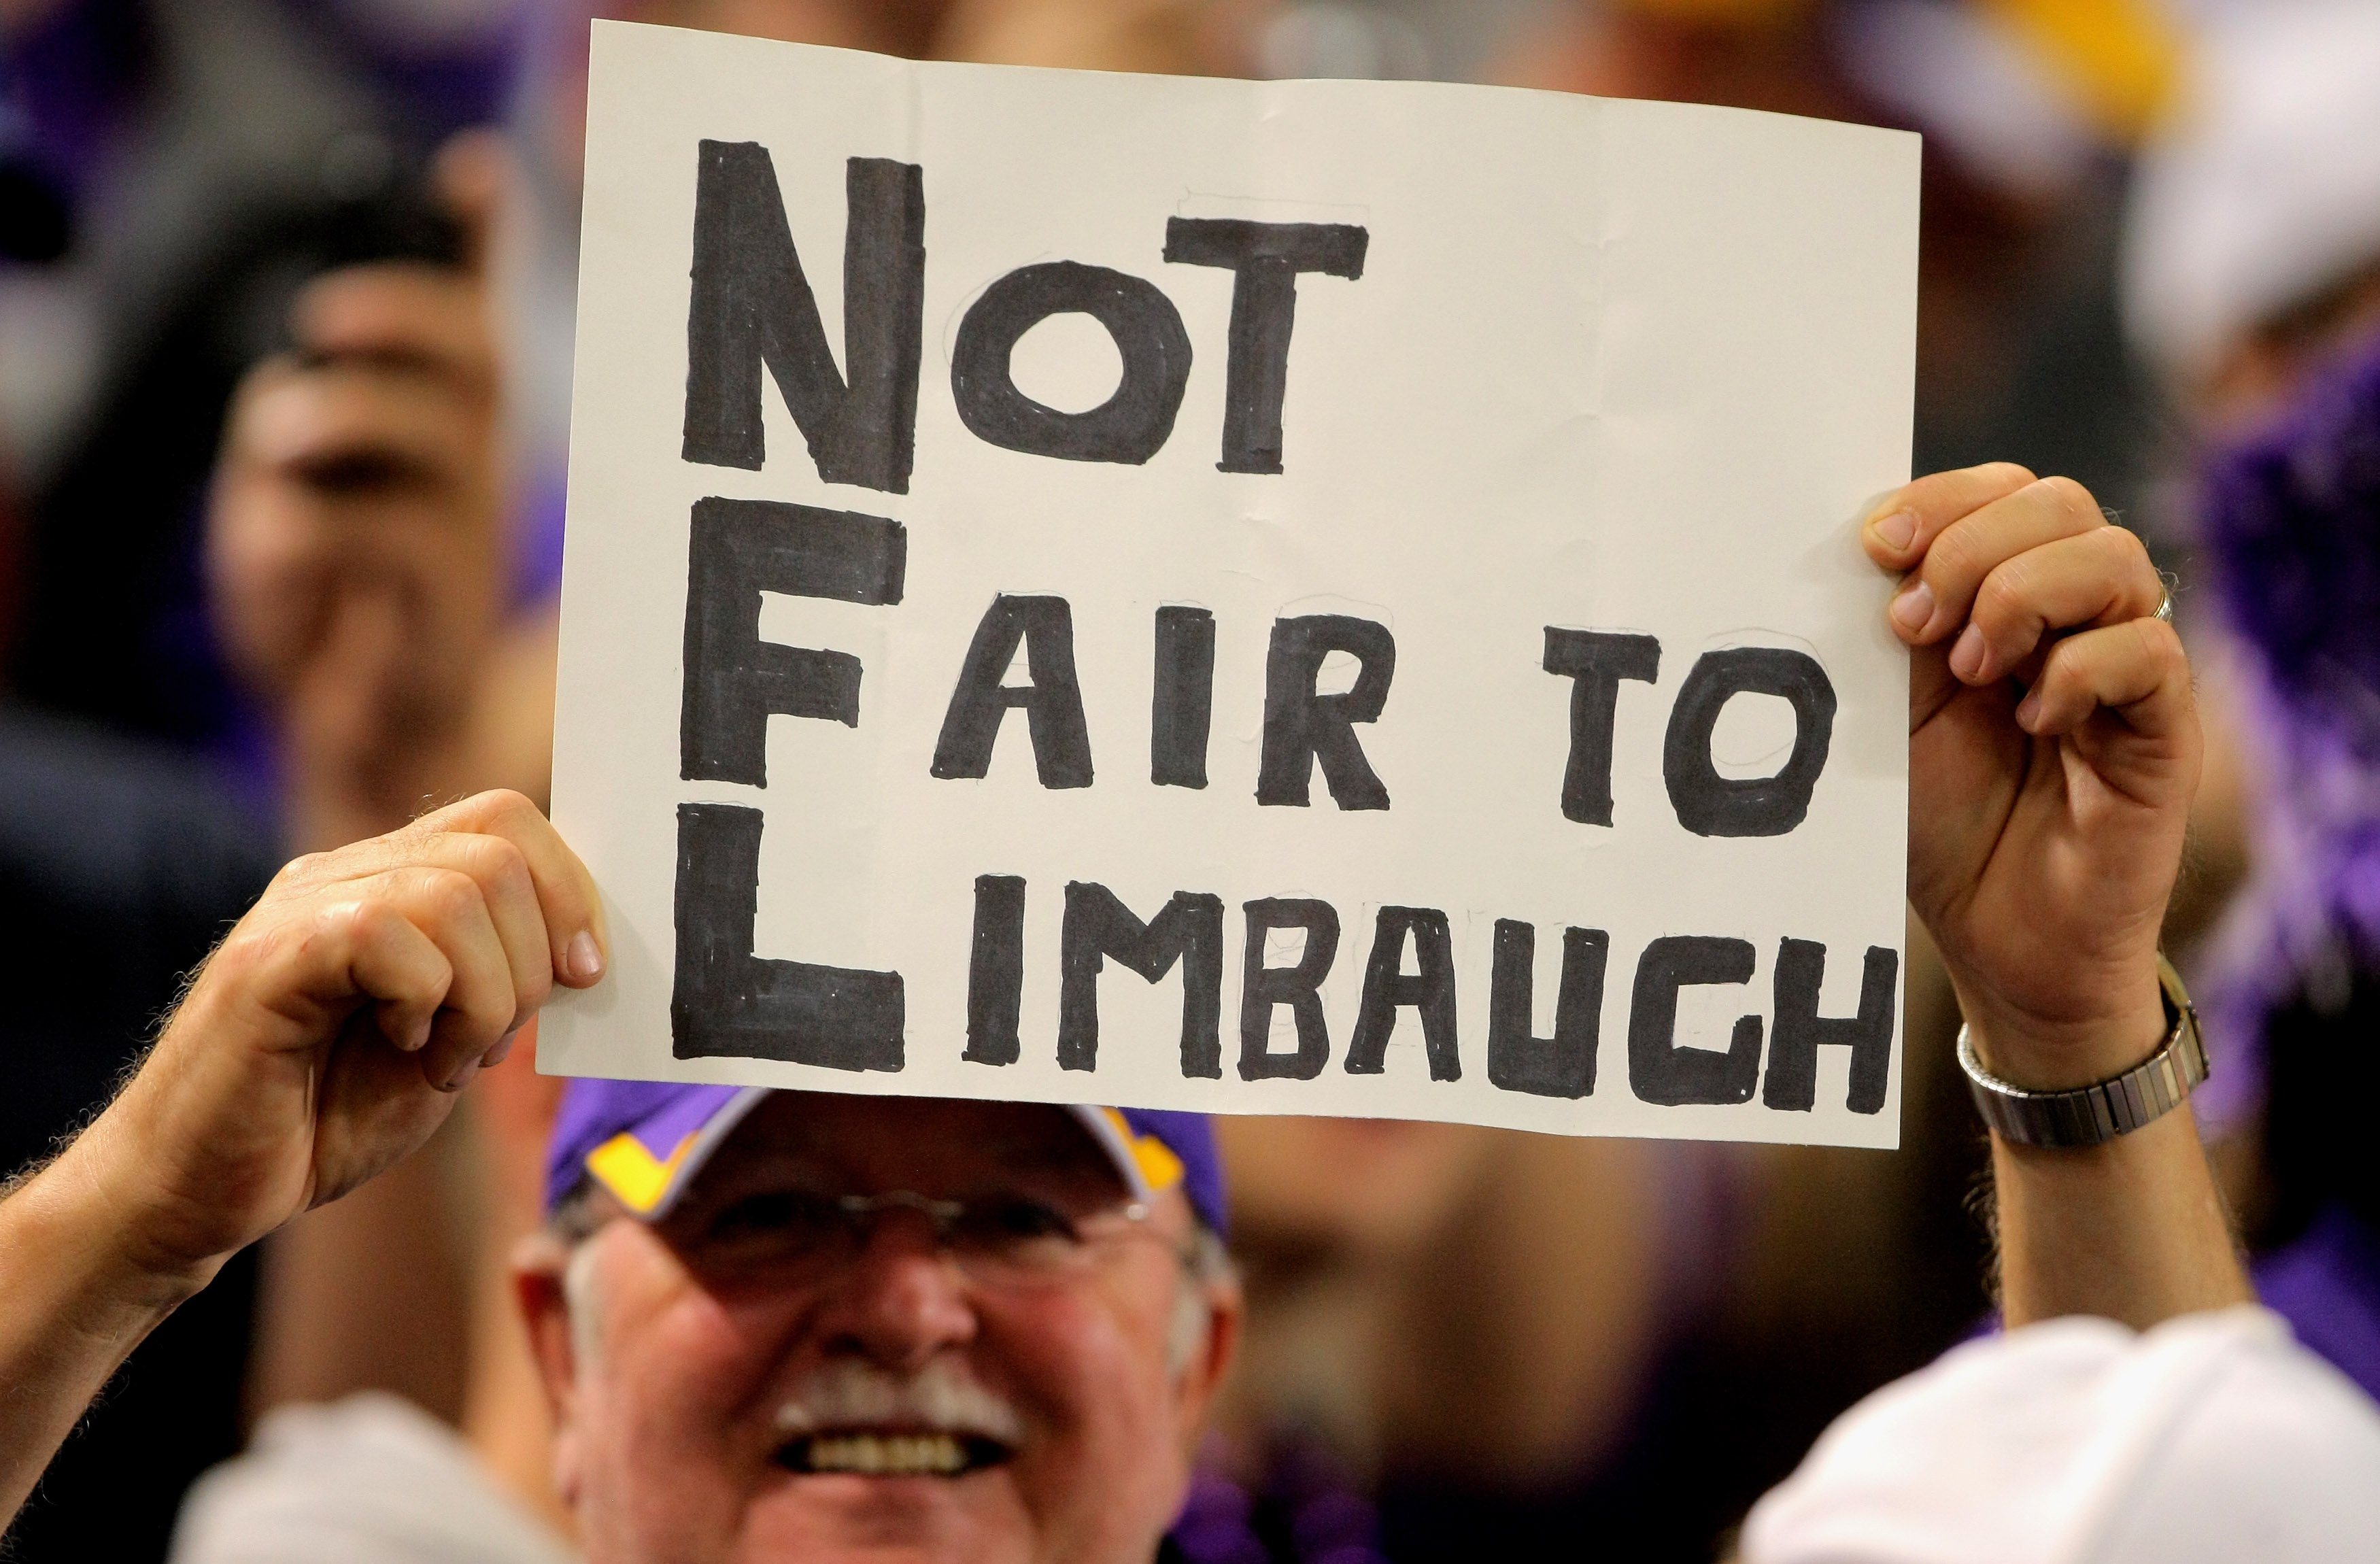 MINNEAPOLIS - OCTOBER 18:  A fan holds a sign in support of Rush Limbaugh as the Minnesota Vikings host the Baltimore Ravens during NFL action at Hubert H. Humphrey Metrodome on October 18, 2009 in Minneapolis, Minnesota. Te Vikings defeated the Ravens 33